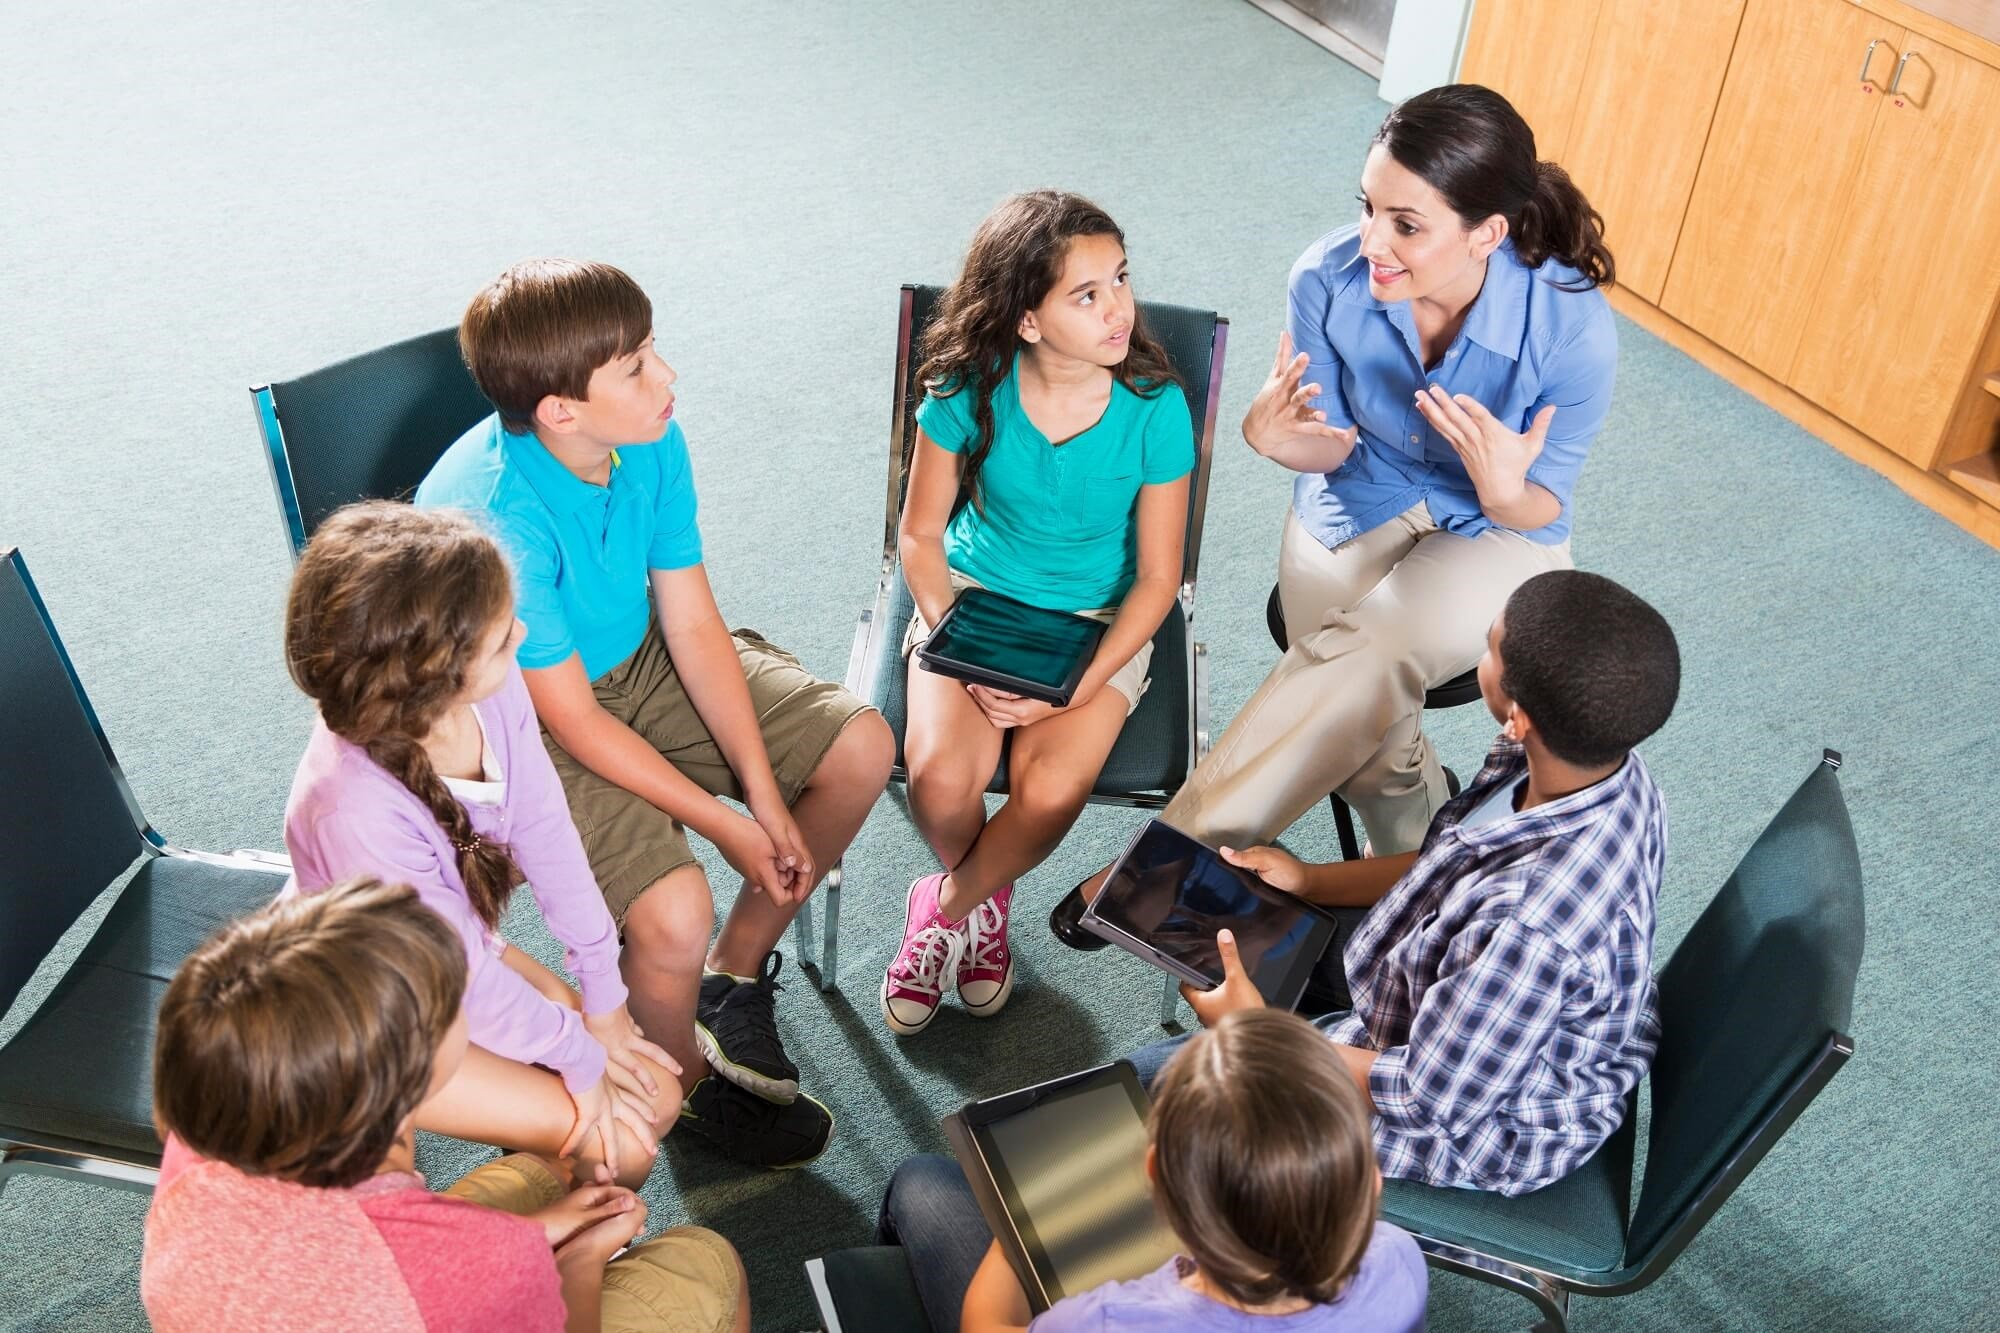 Group Cognitive Behavioral Therapy Is Effective Treatment for Adolescent Anxiety